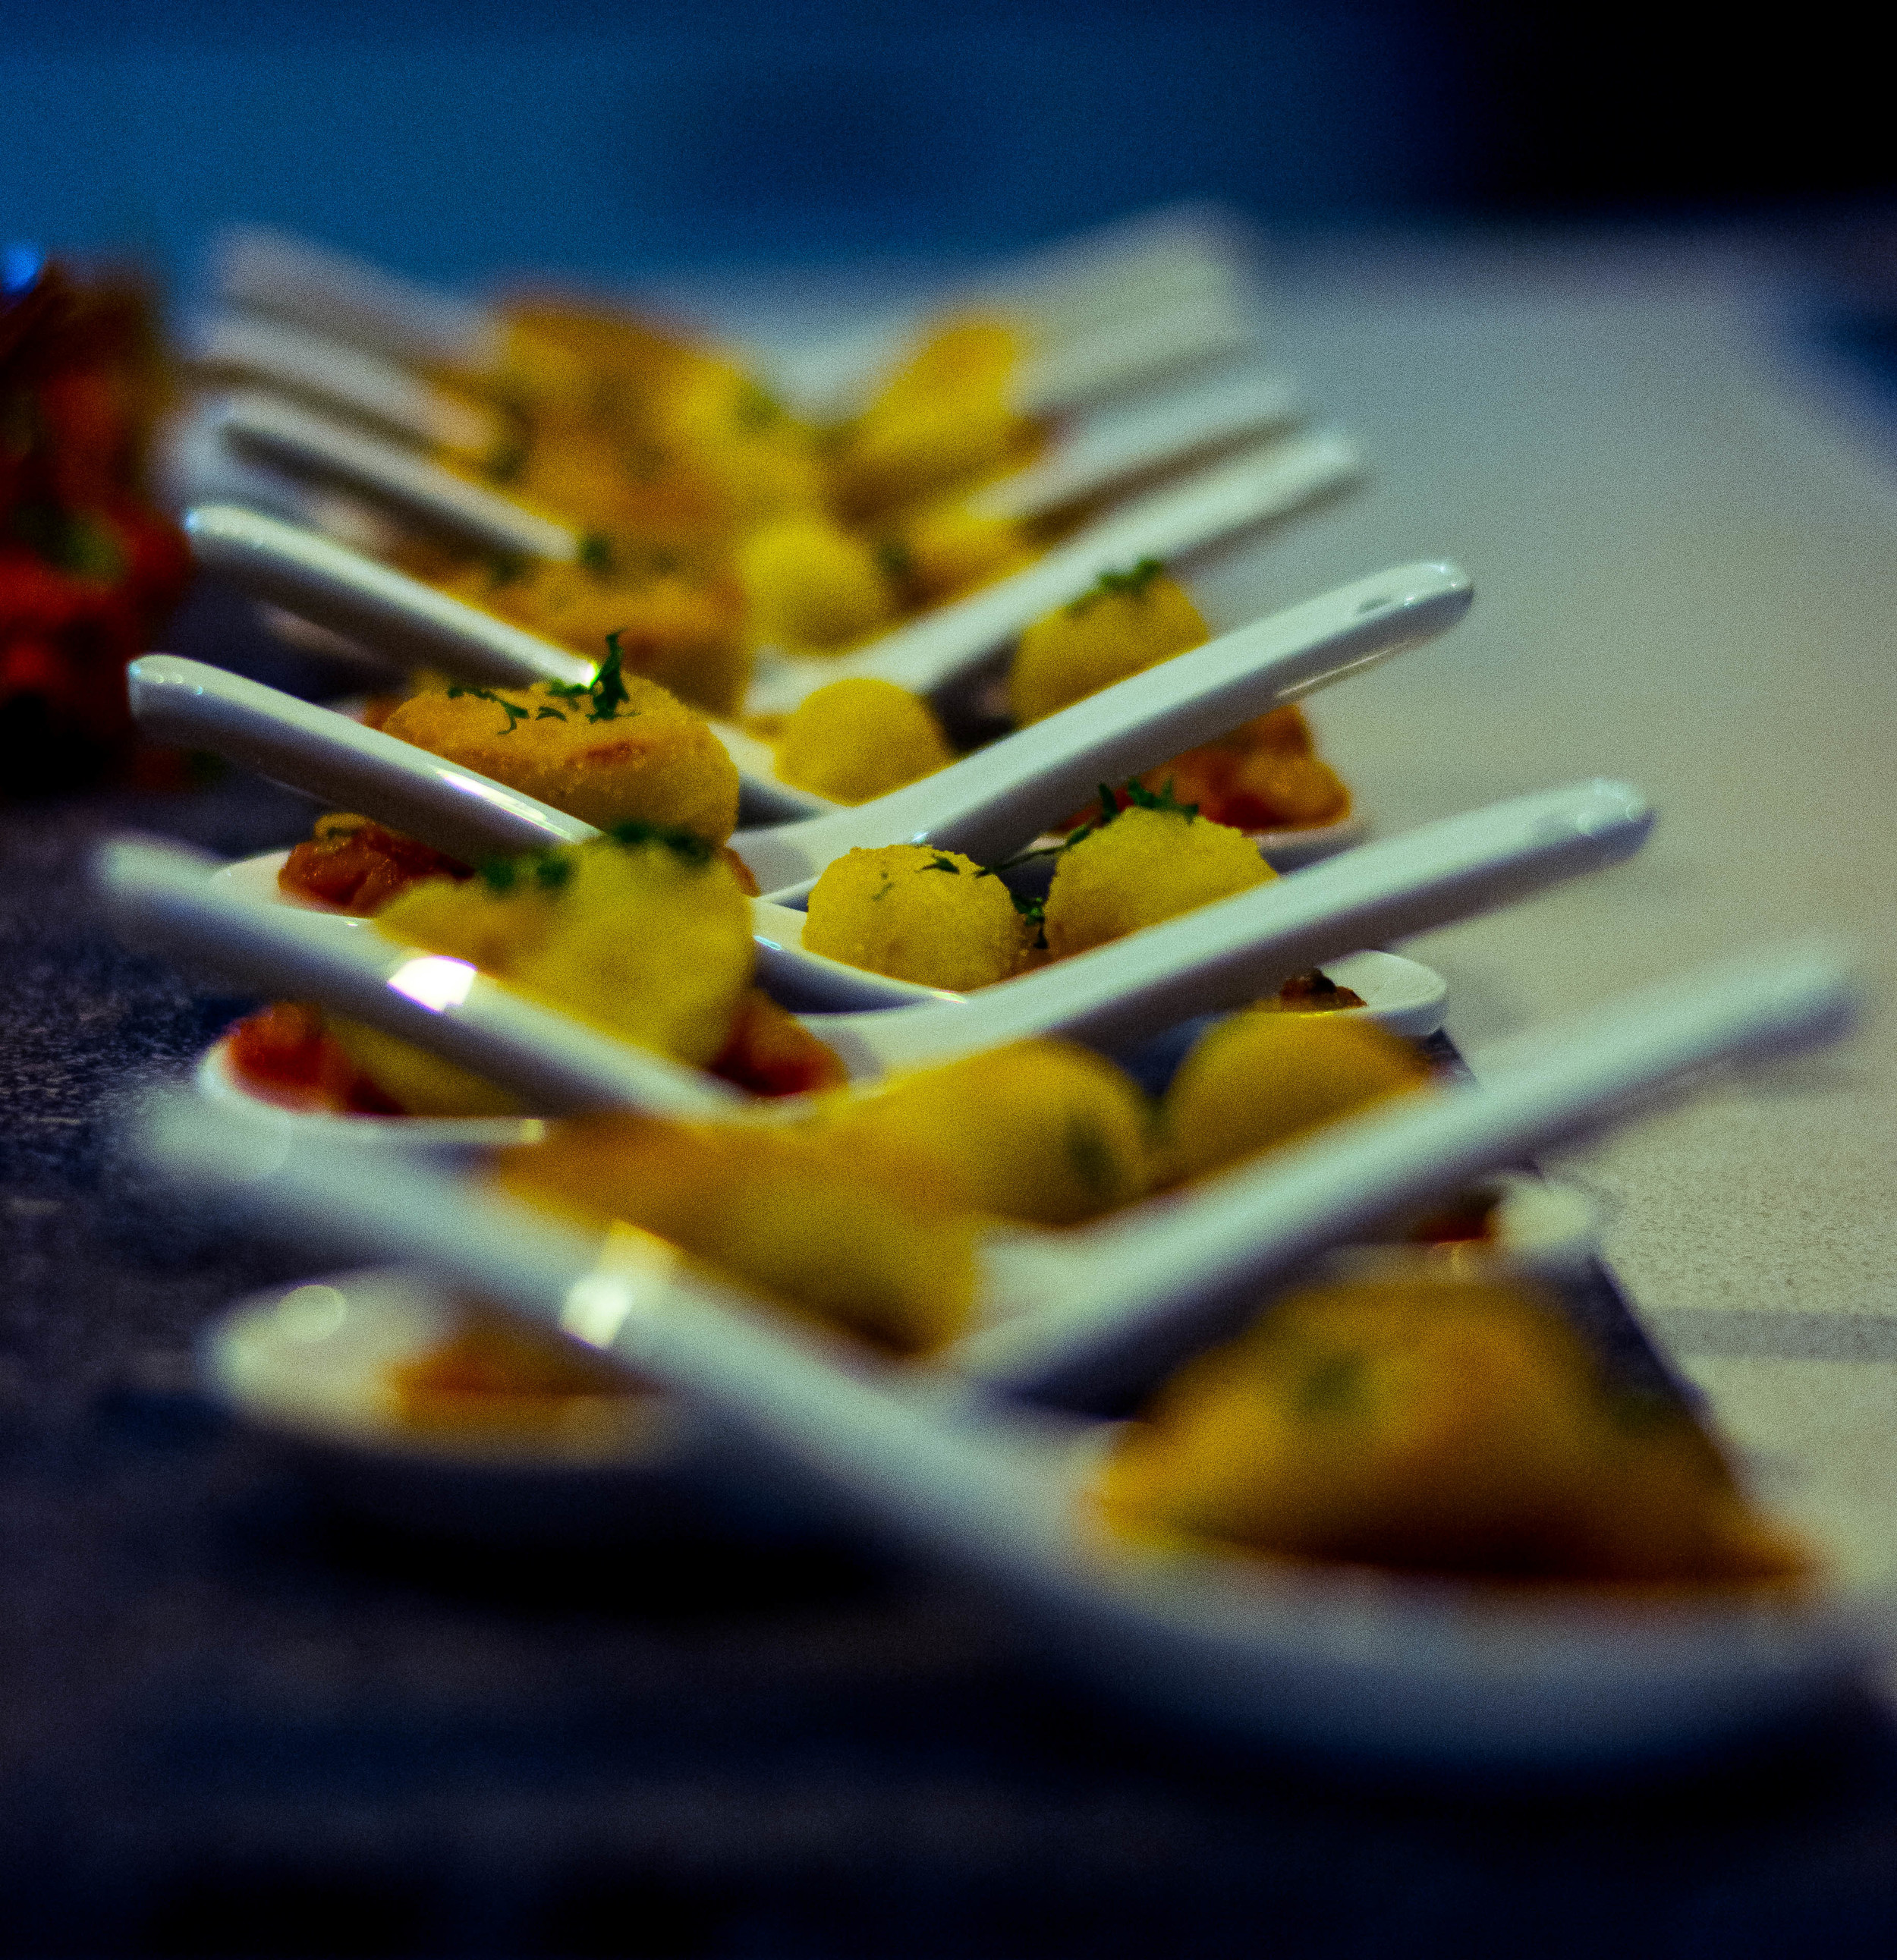 So often the food at weddings is really average – we wanted something special so we hired The Canapé Project to cater for our wedding on a recommendation from a friend, and we were ecstatic with the food and the service that was provided! Matt cooked food that tasted incredible, and all our guests raved about it. Perfect match to our perfect day.  - Belle & Luke, Sandgate